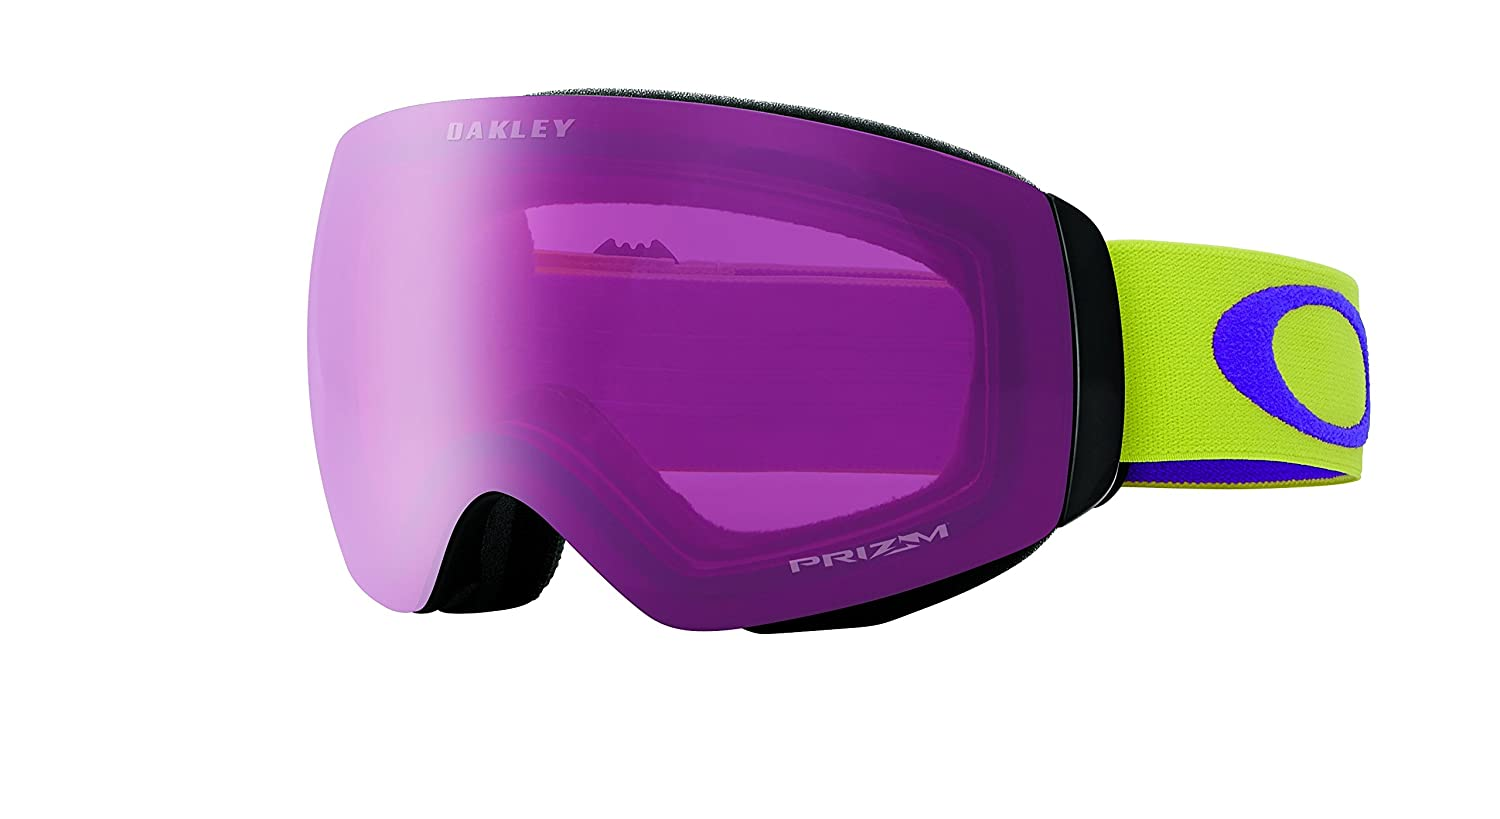 oakley goggles for sale  oakley flight deck xm snow goggles